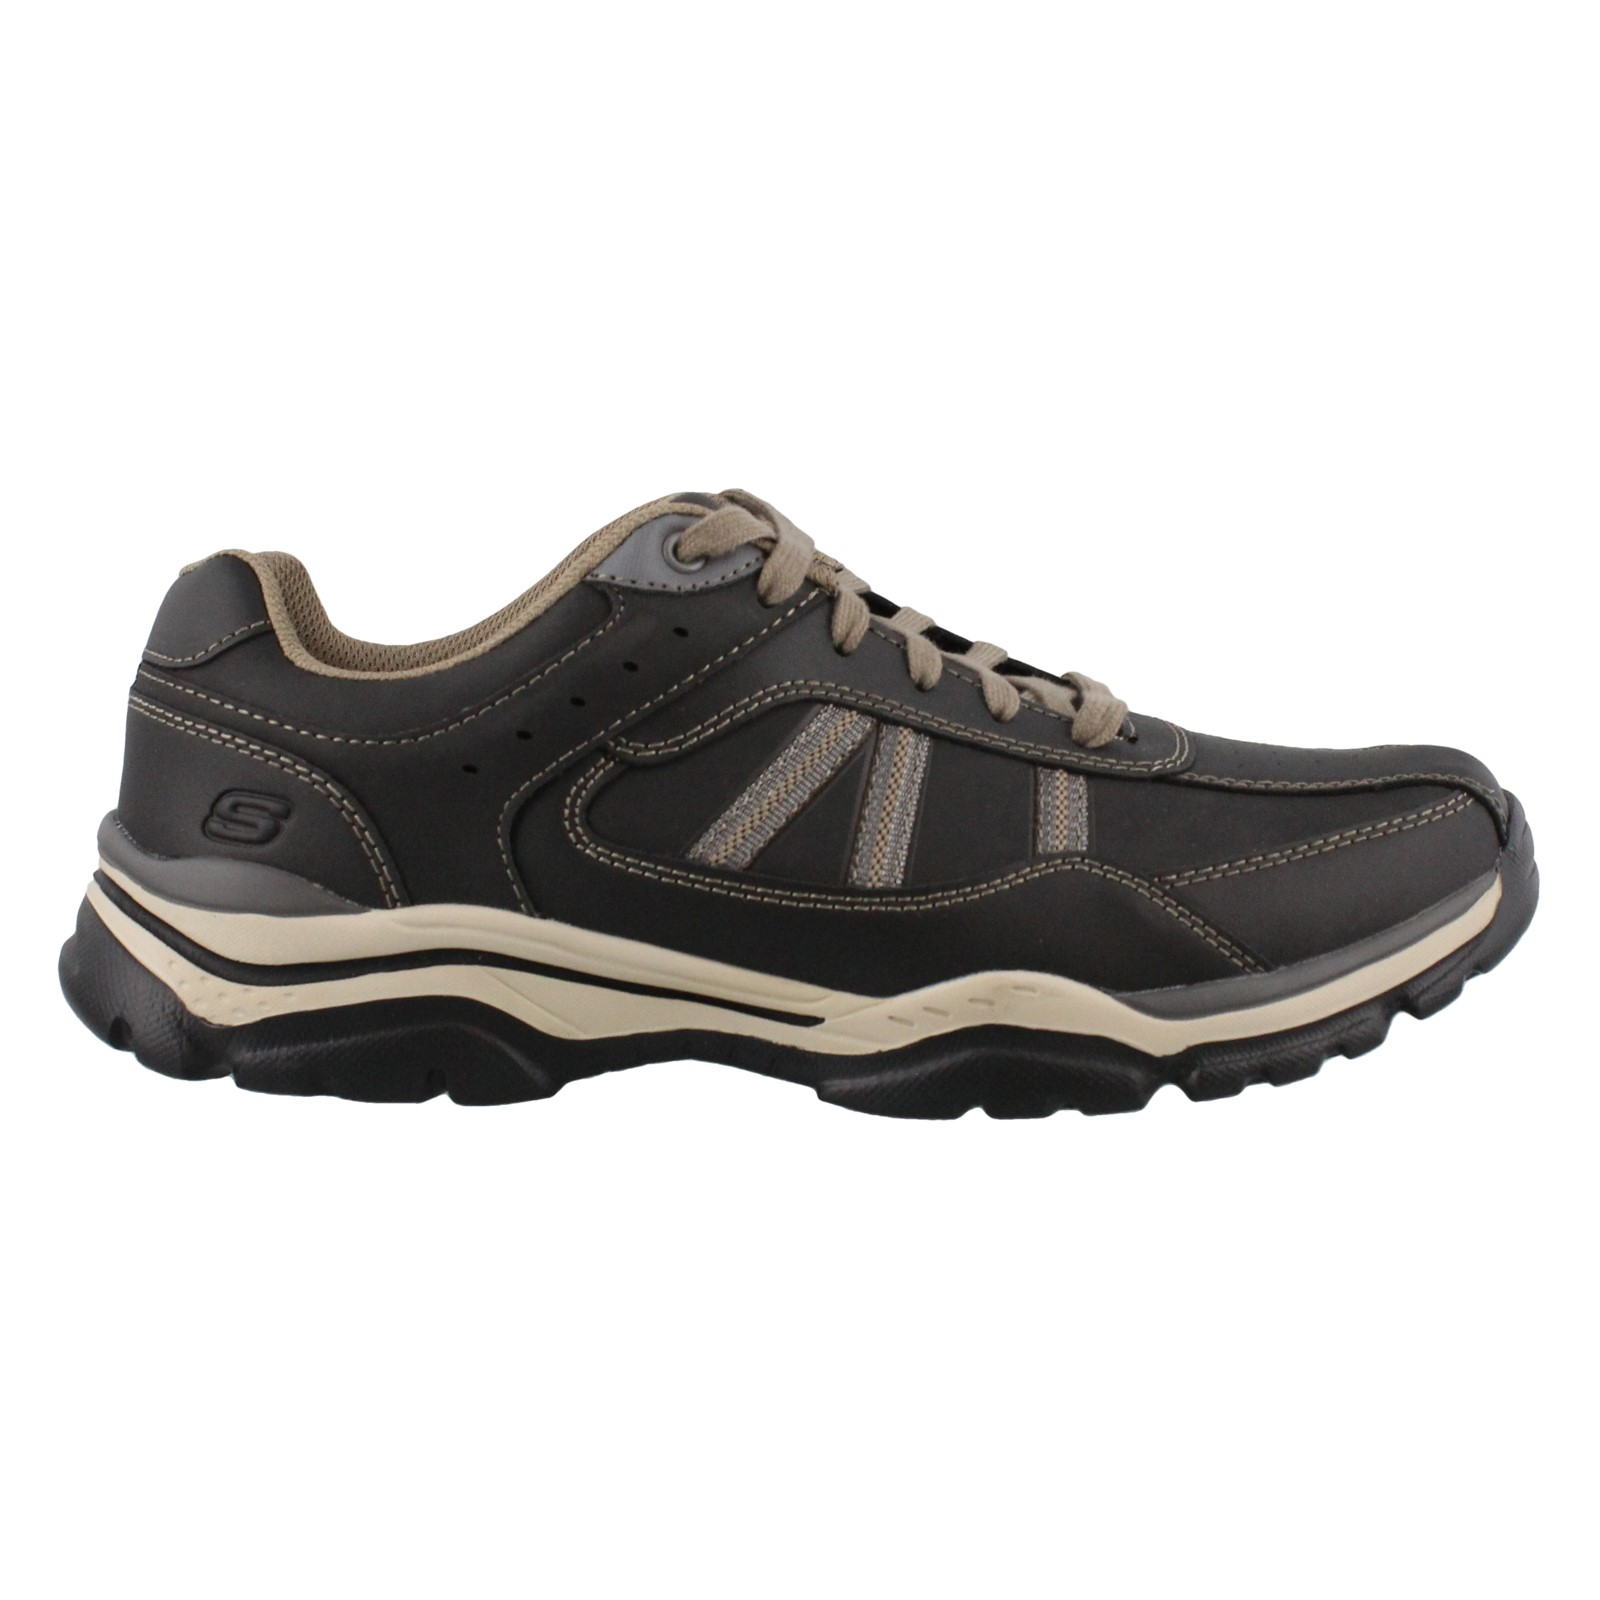 e2db8a45b61b0 Men's Skechers, Rovato Texon Lace up Shoes | Peltz Shoes